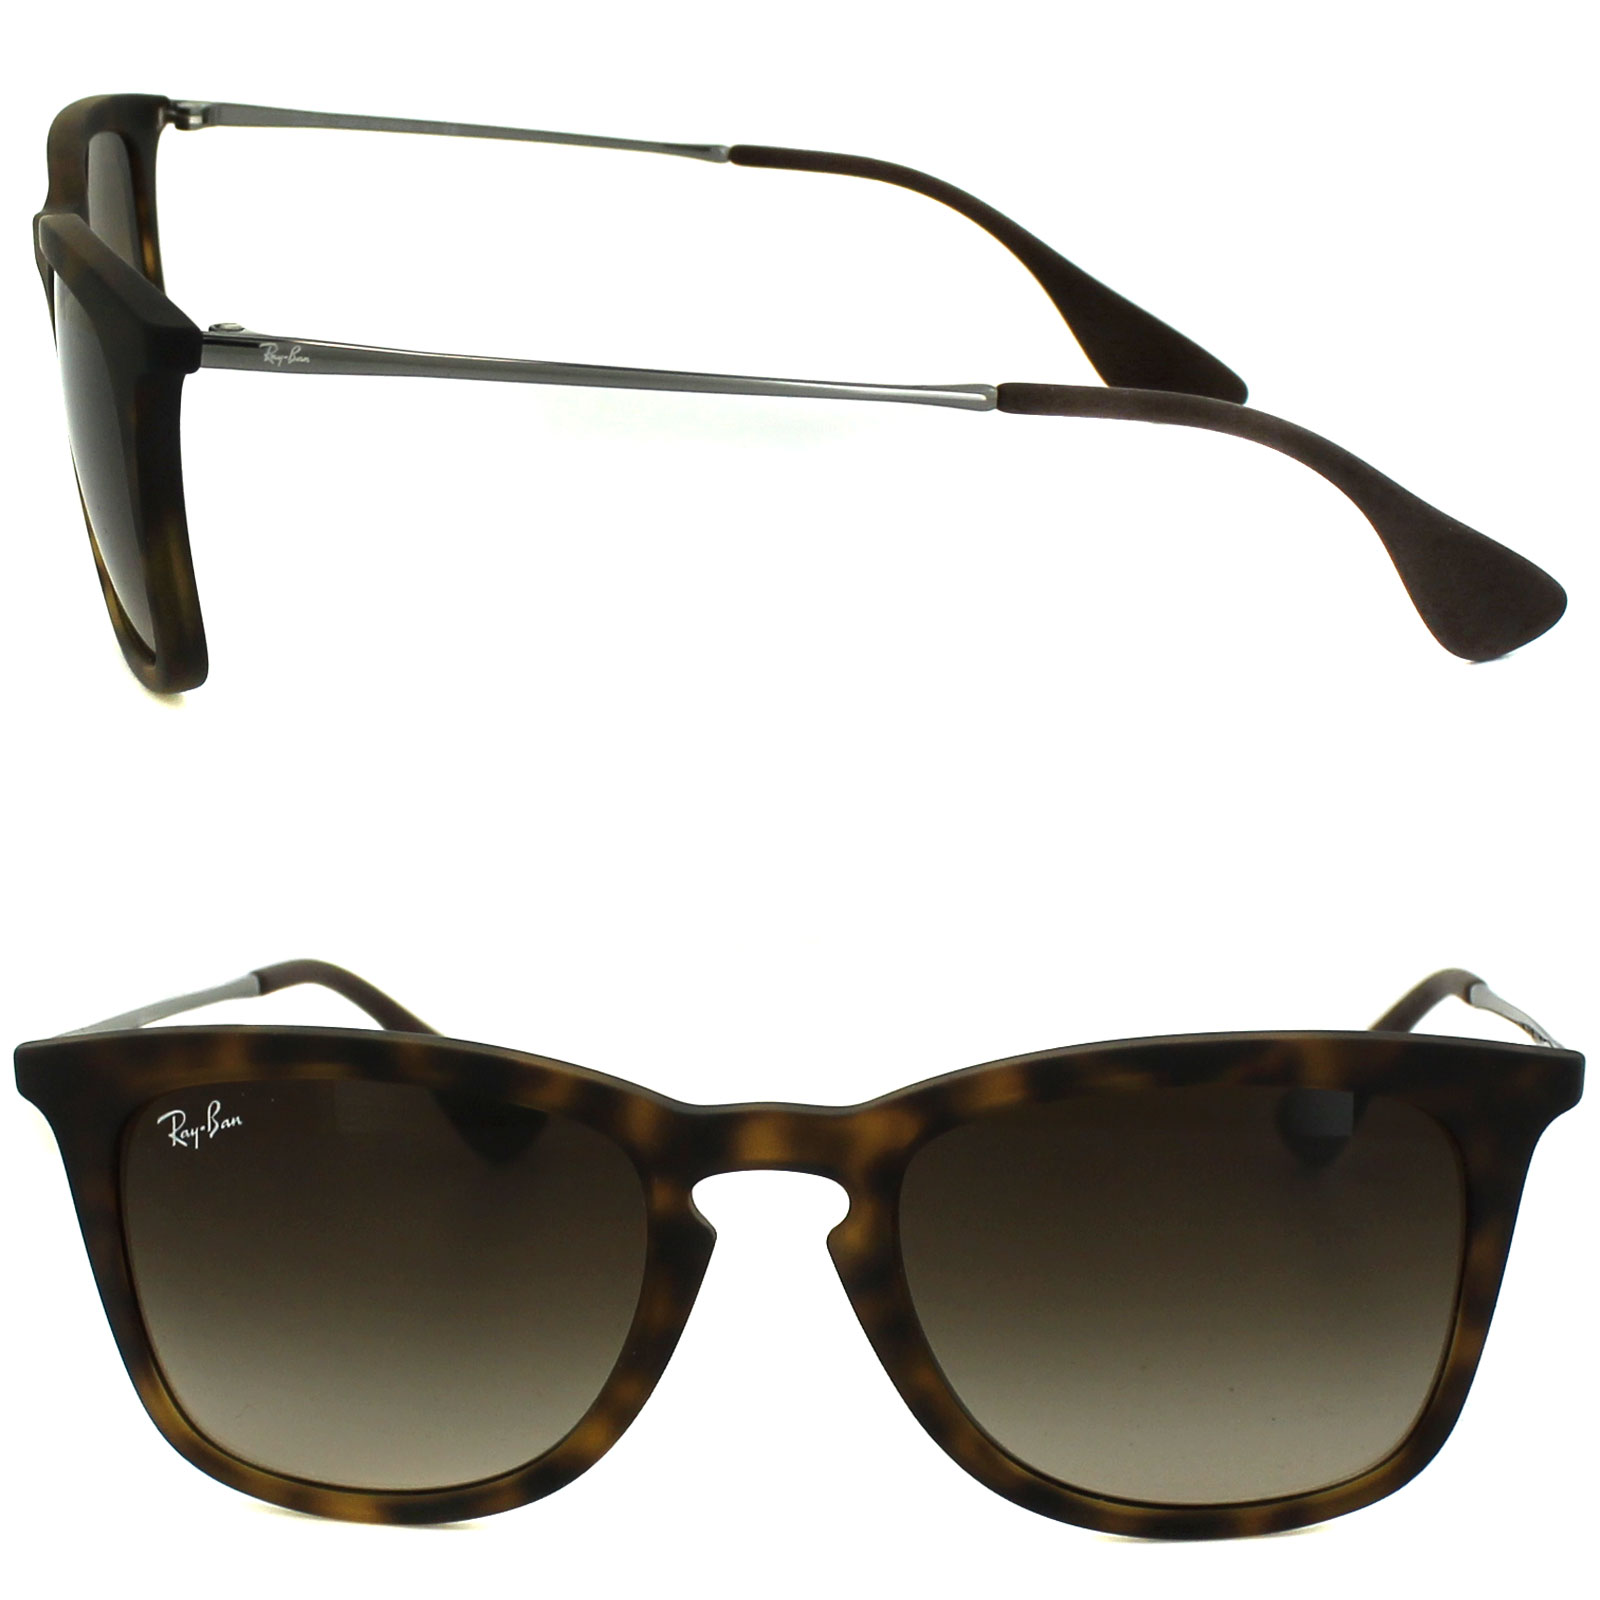 ray ban aviator sunglasses price comparison